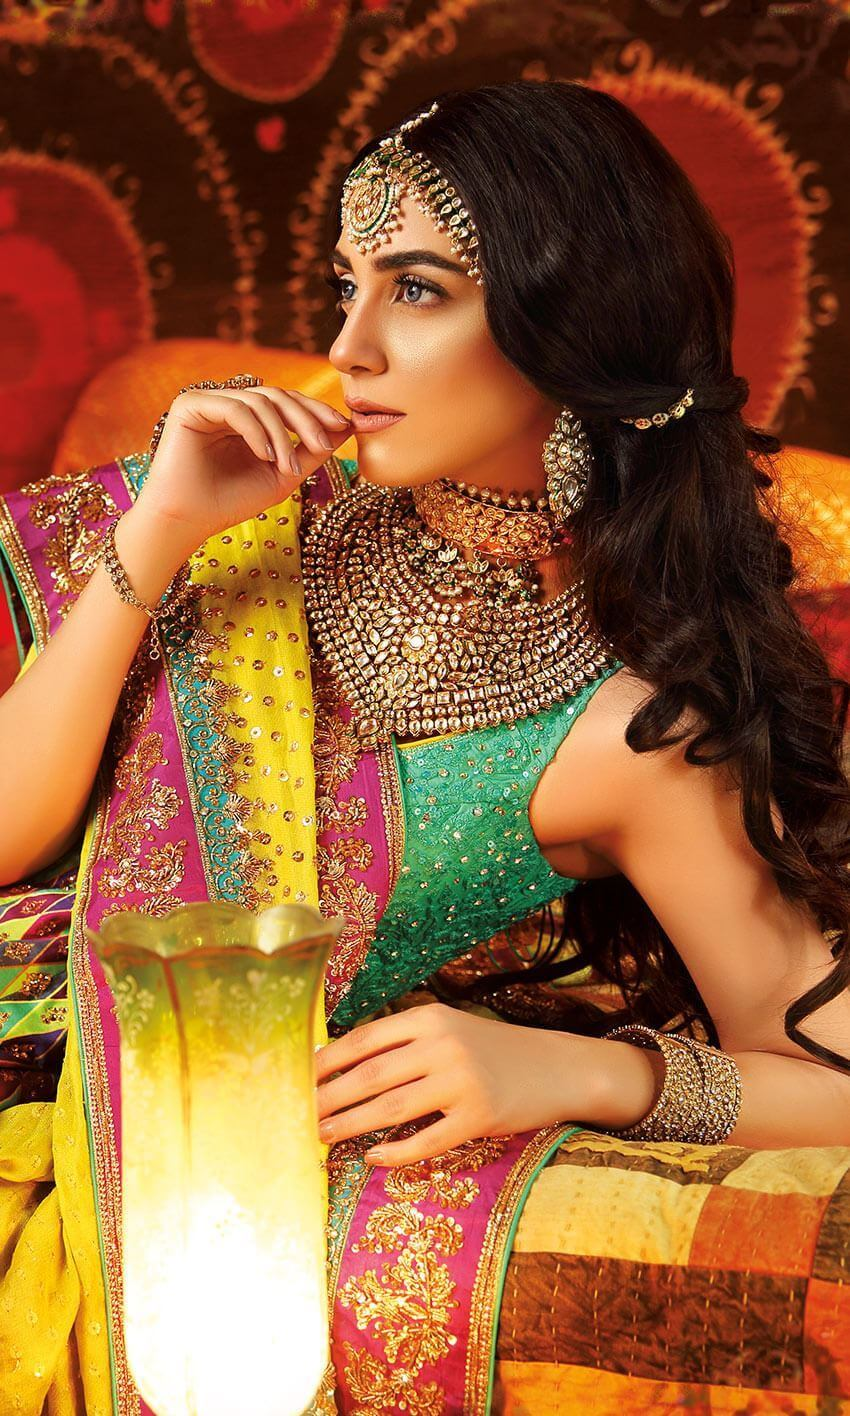 Swarovski crystal work Bridal Mehndi Dress by Nomi Ansari